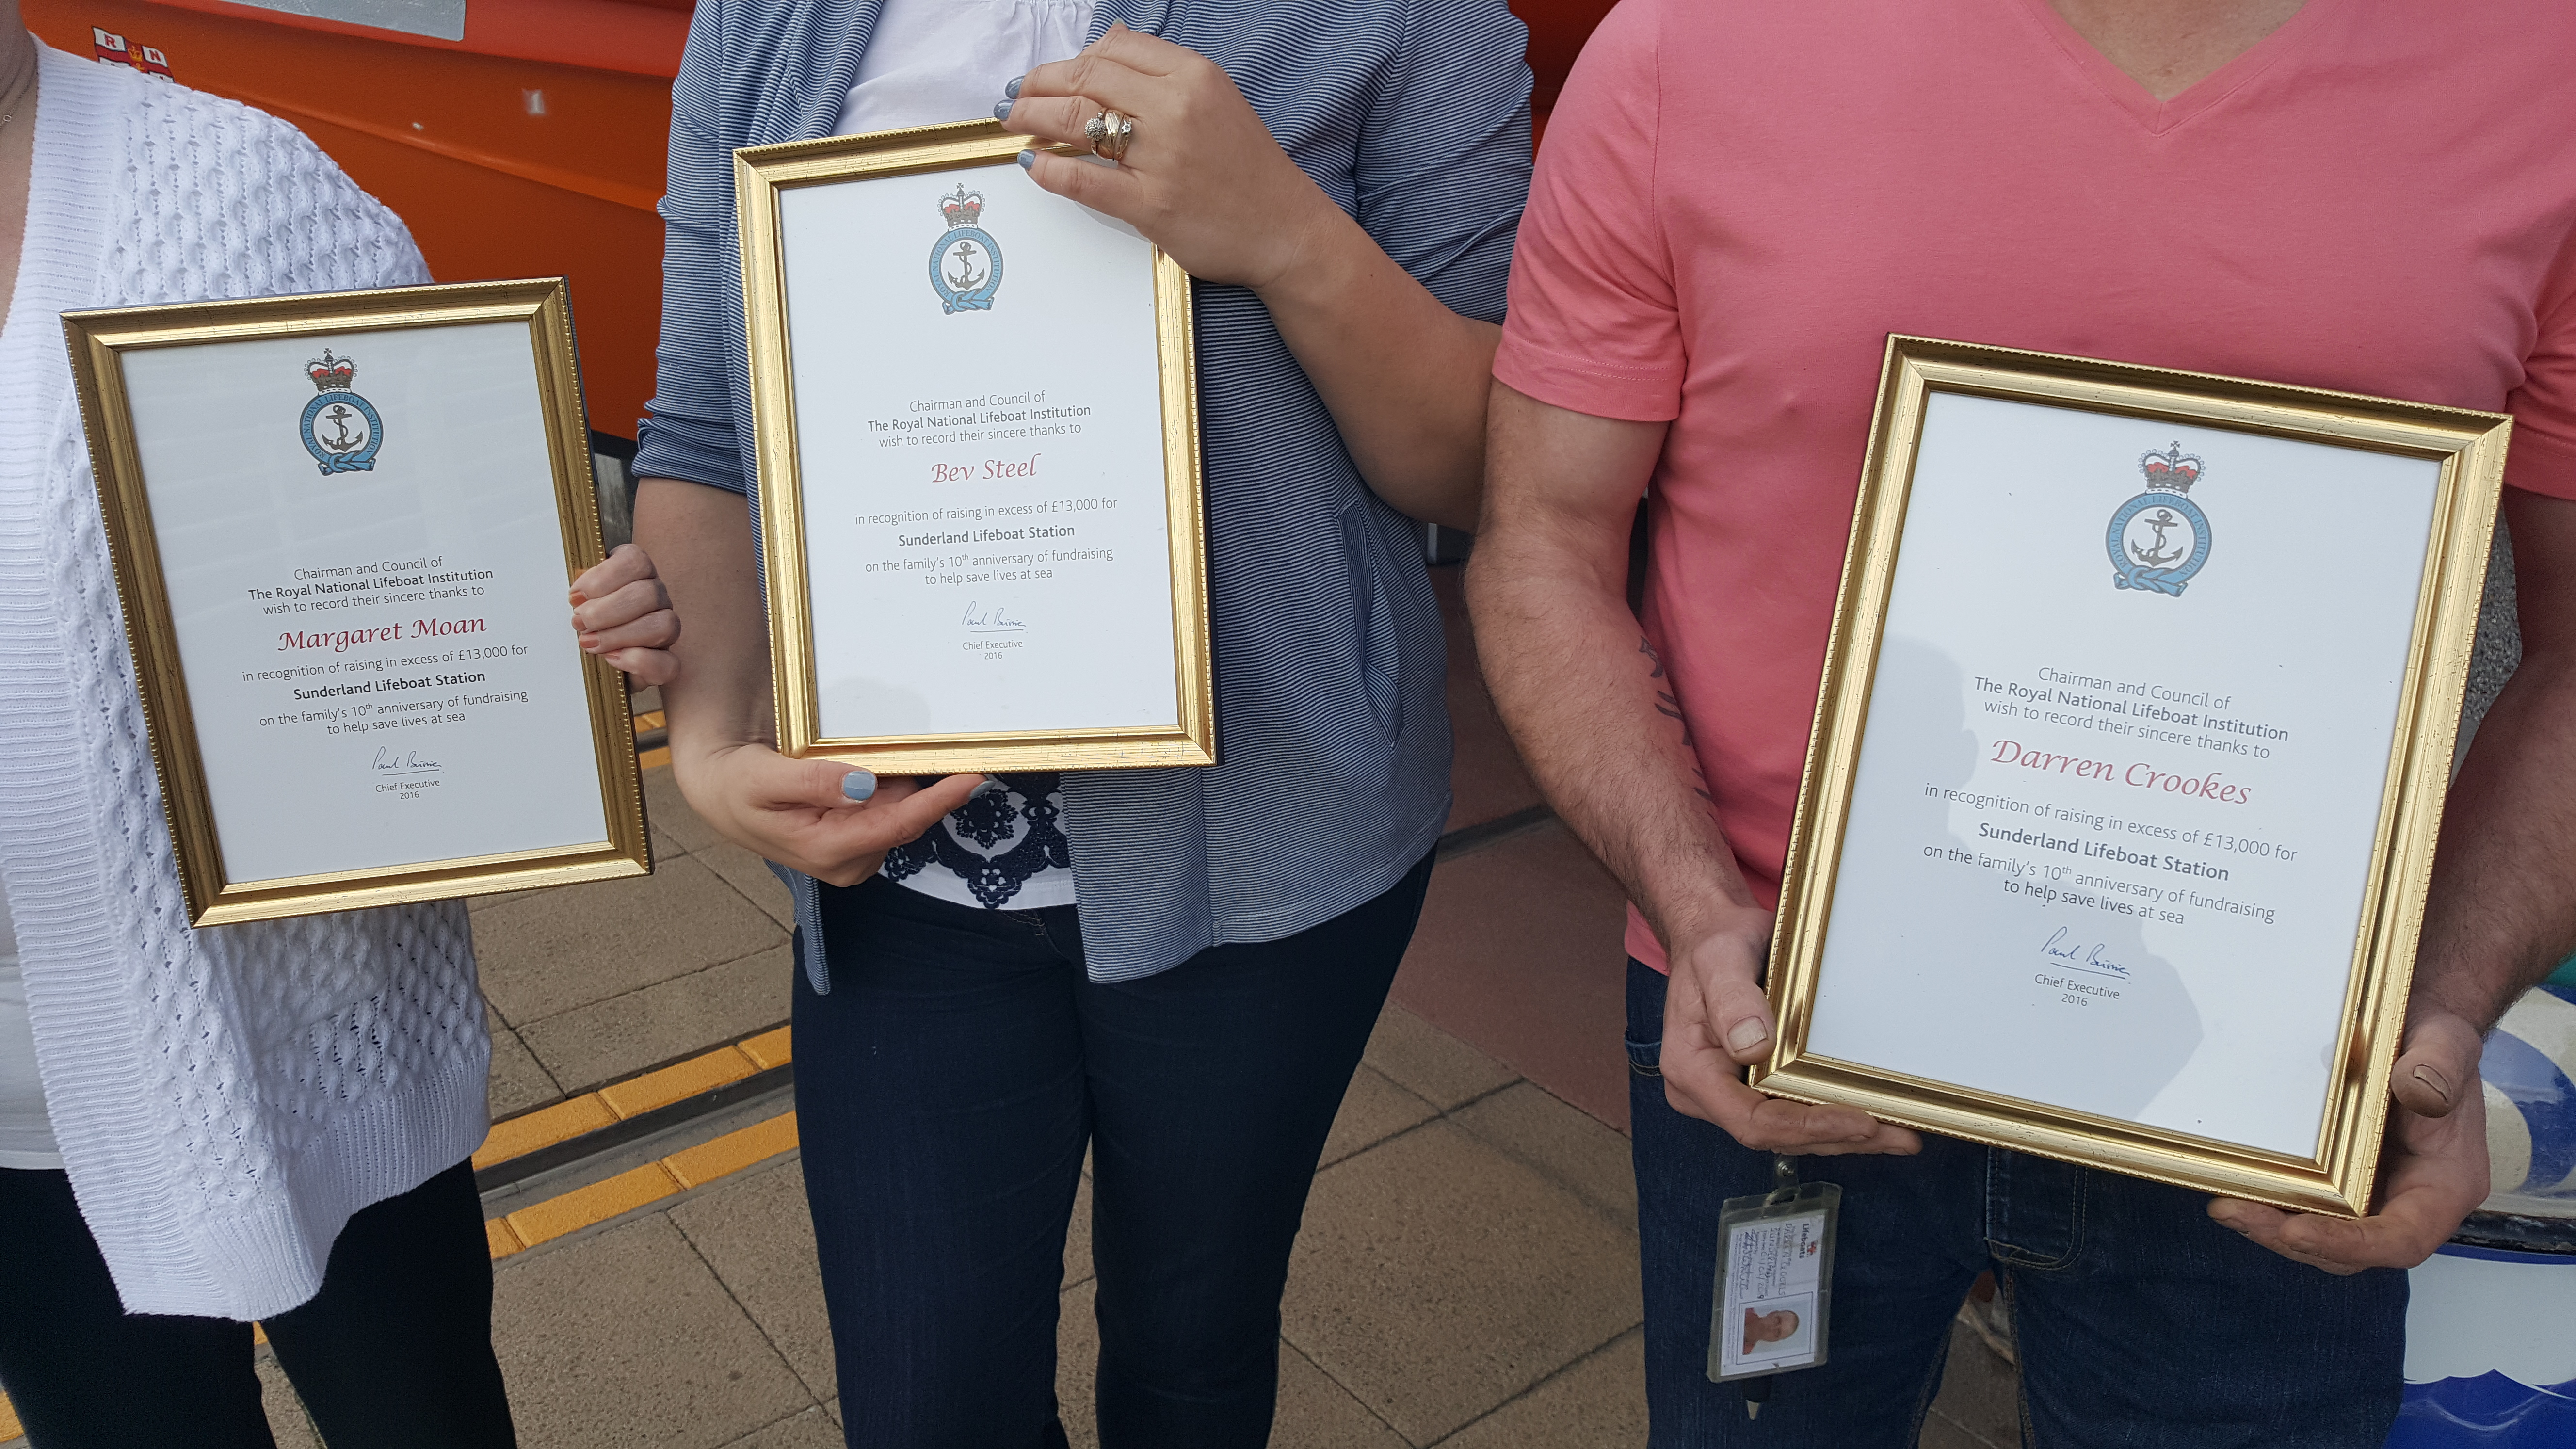 RNLI awards for fundraisers Margaret Moan, Bev Steel, and Darren Crookes